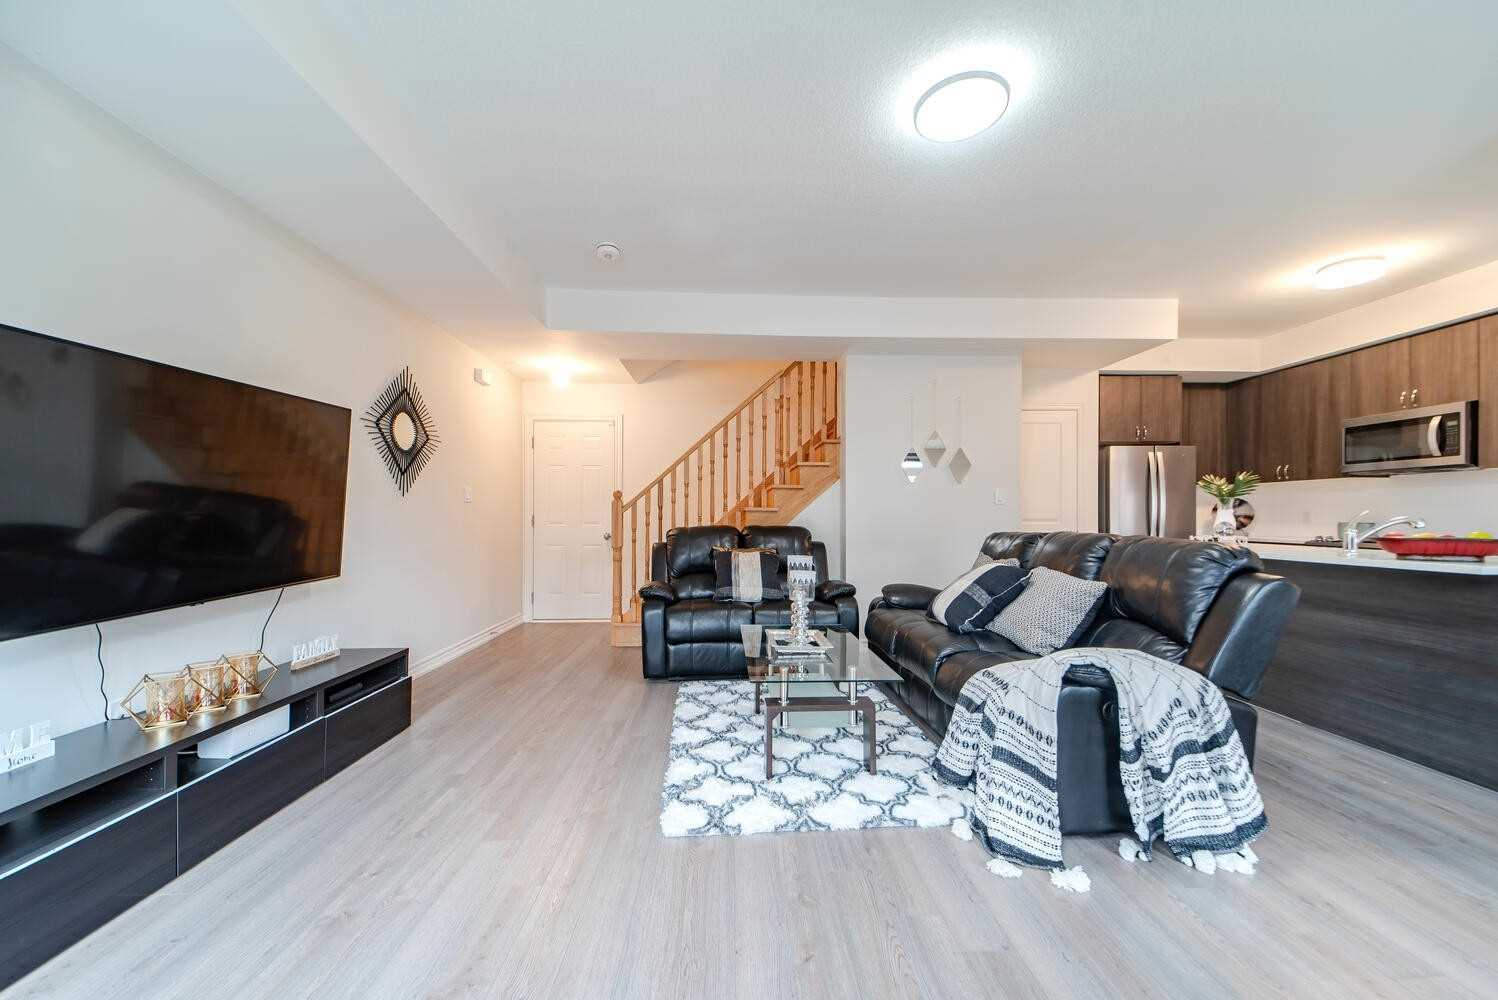 Image 37 of 40 showing inside of 3 Bedroom Condo Townhouse 2-Storey for Sale at 2738 William Jackson Dr Unit# 6, Pickering L1X0E6